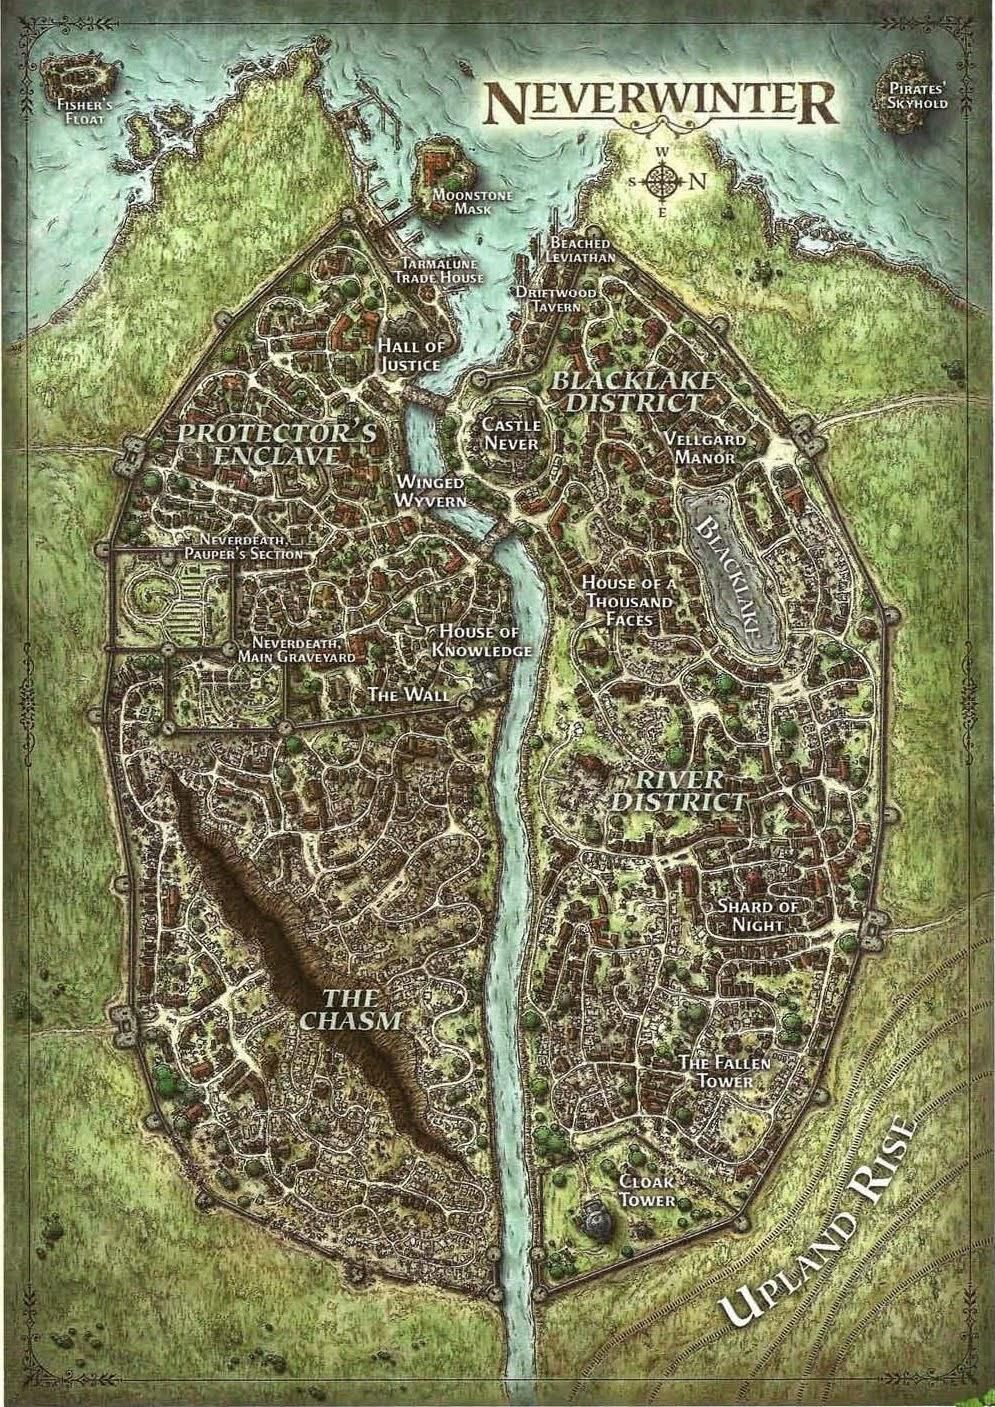 Neverwinter D&d Map : neverwinter, Neverwinter, Toril,, Released, Wizards, Coast, Fantasy, World